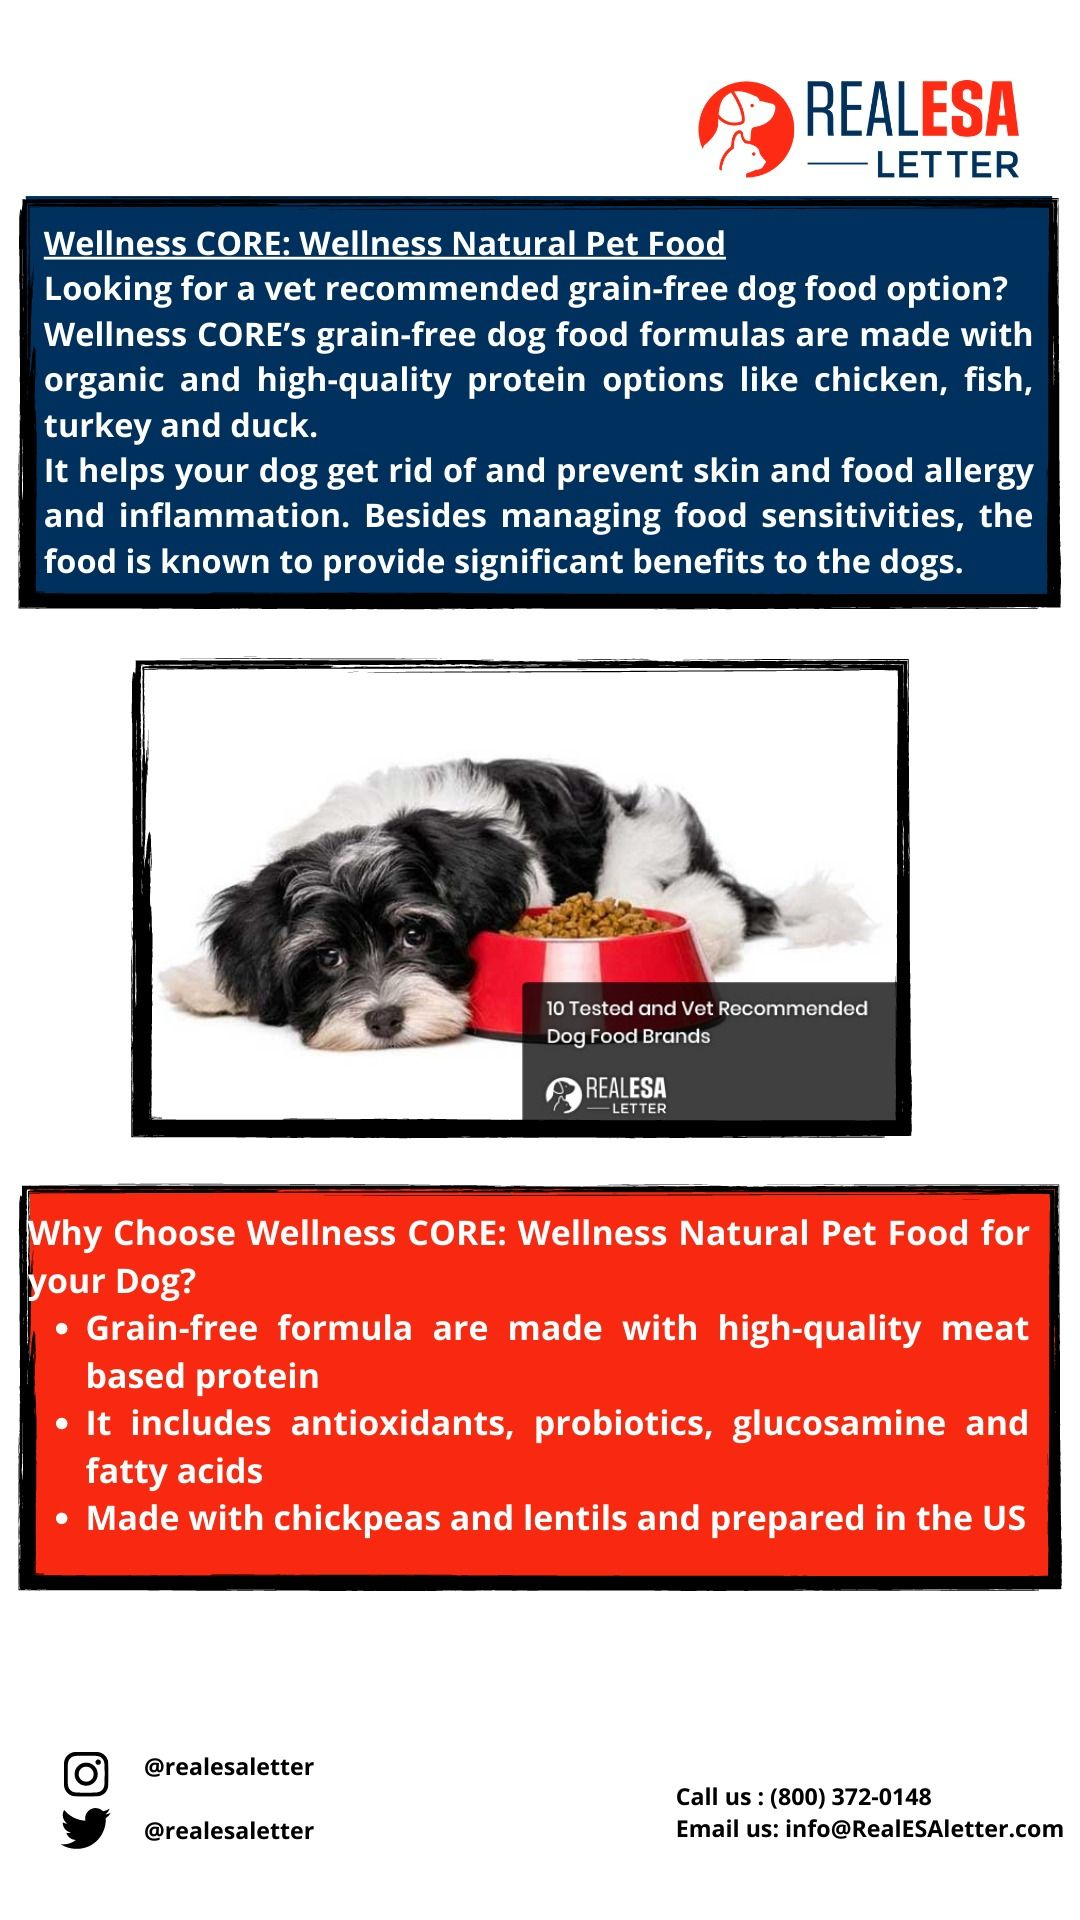 10 Tested And Vet Recommended Dog Food Brands 2 3 Dog Food Recipes Dog Food Brands Grain Free Dog Food